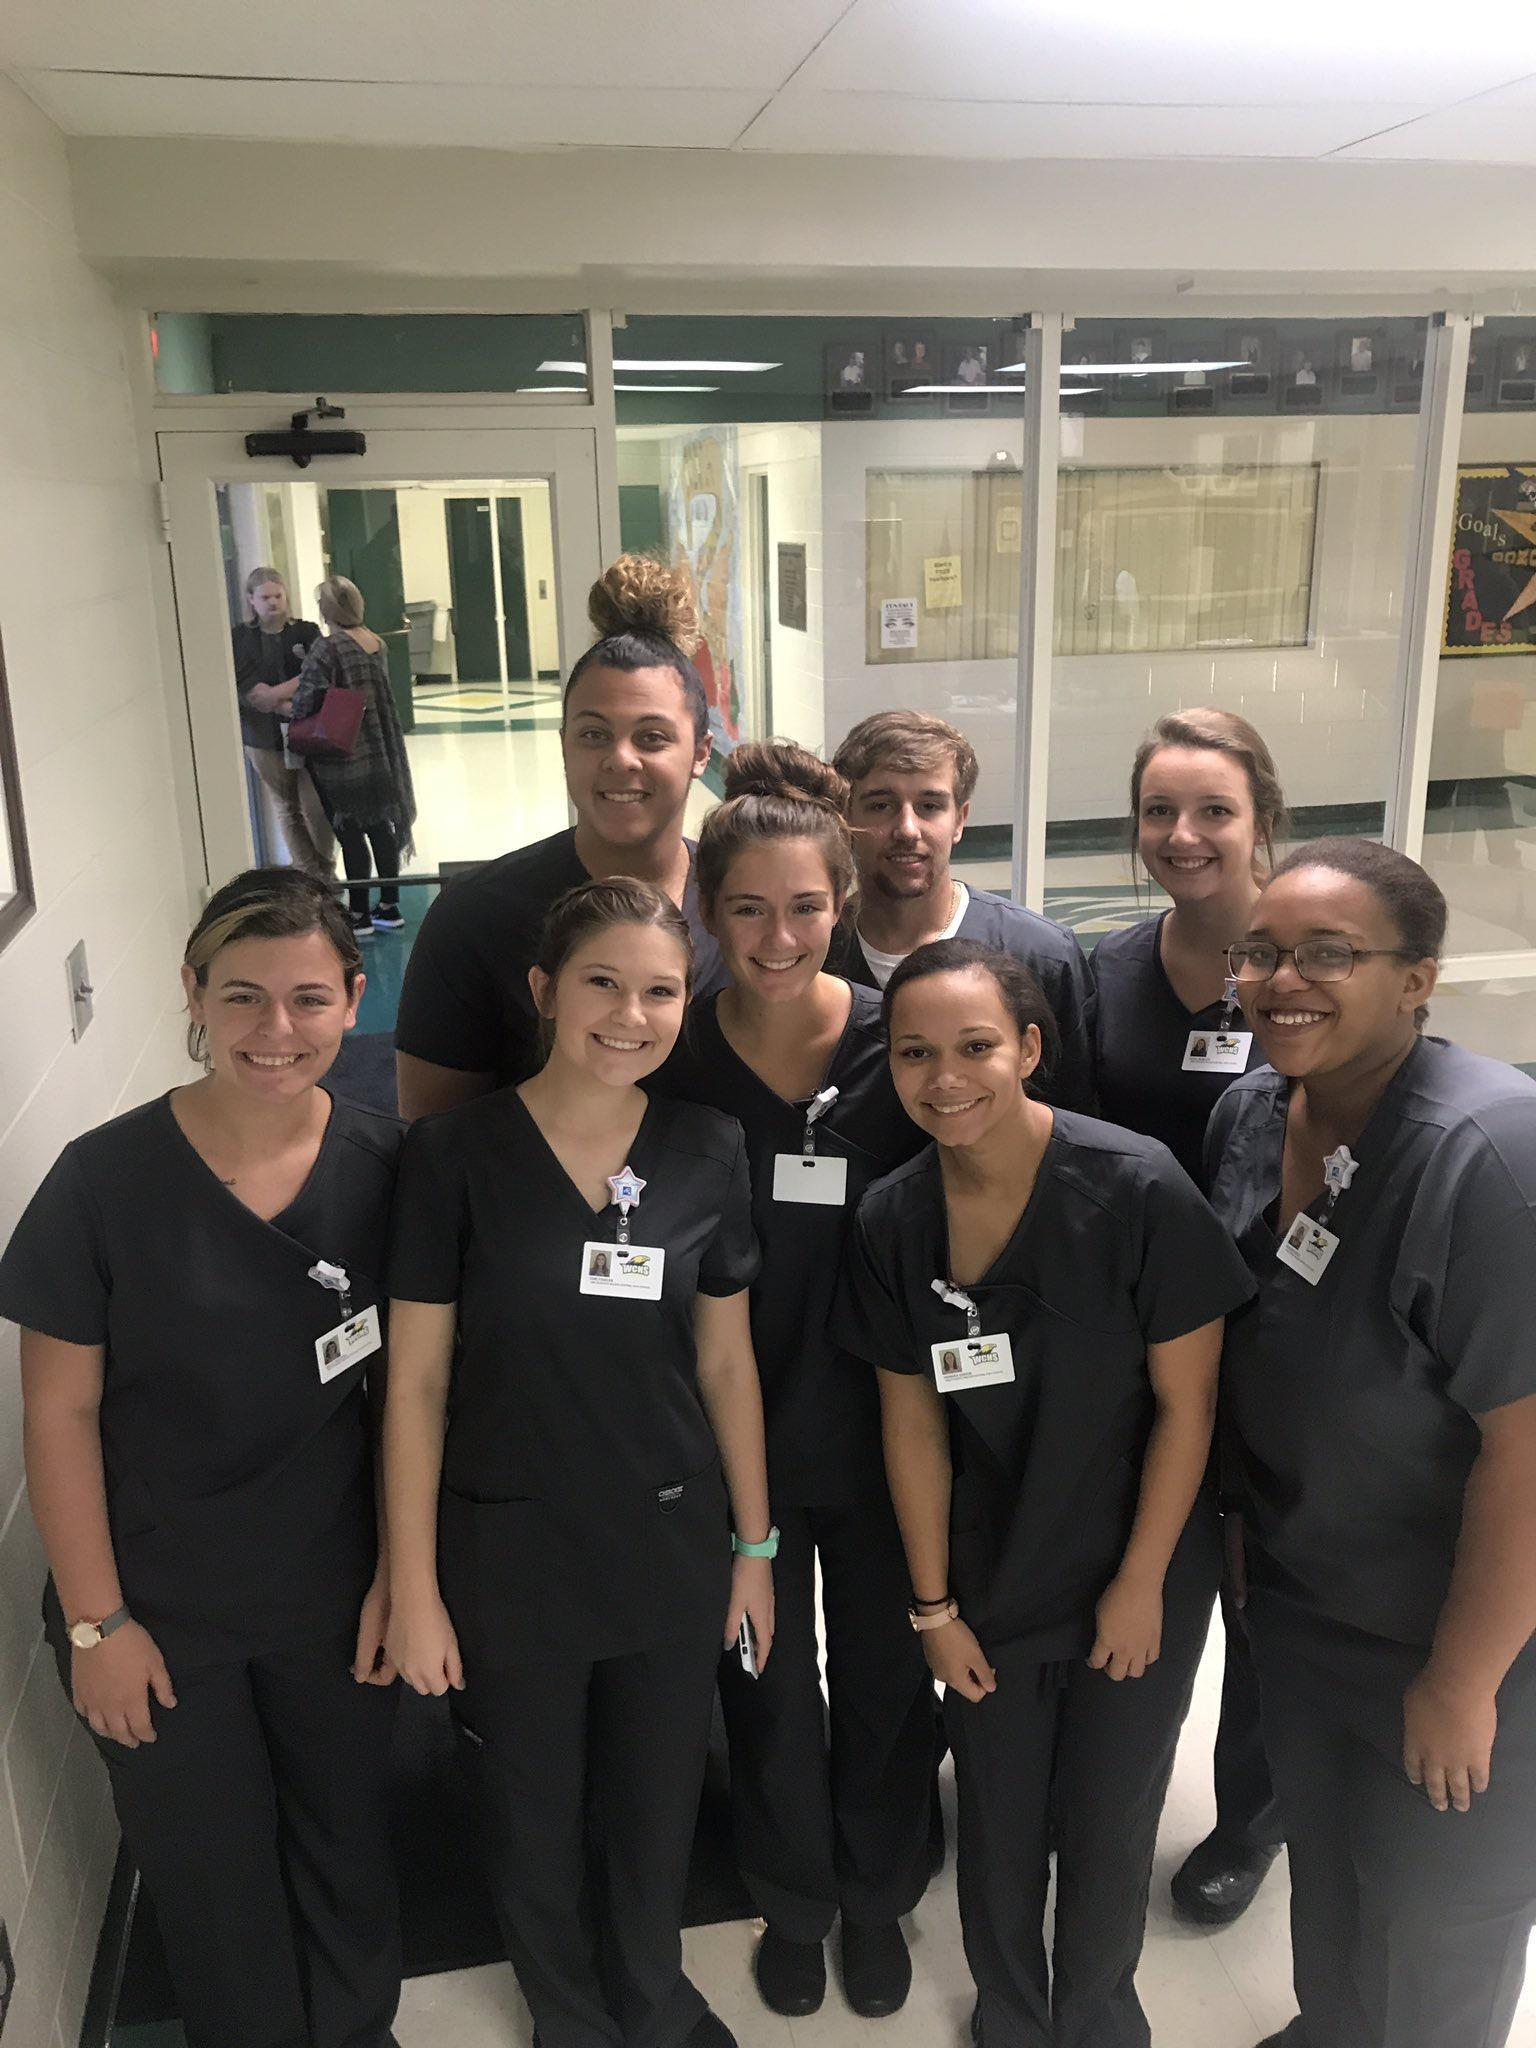 Mrs. Vicki Combs Nursing Fundamentals students (WCHS) dressed out in their scrubs for clinicals.